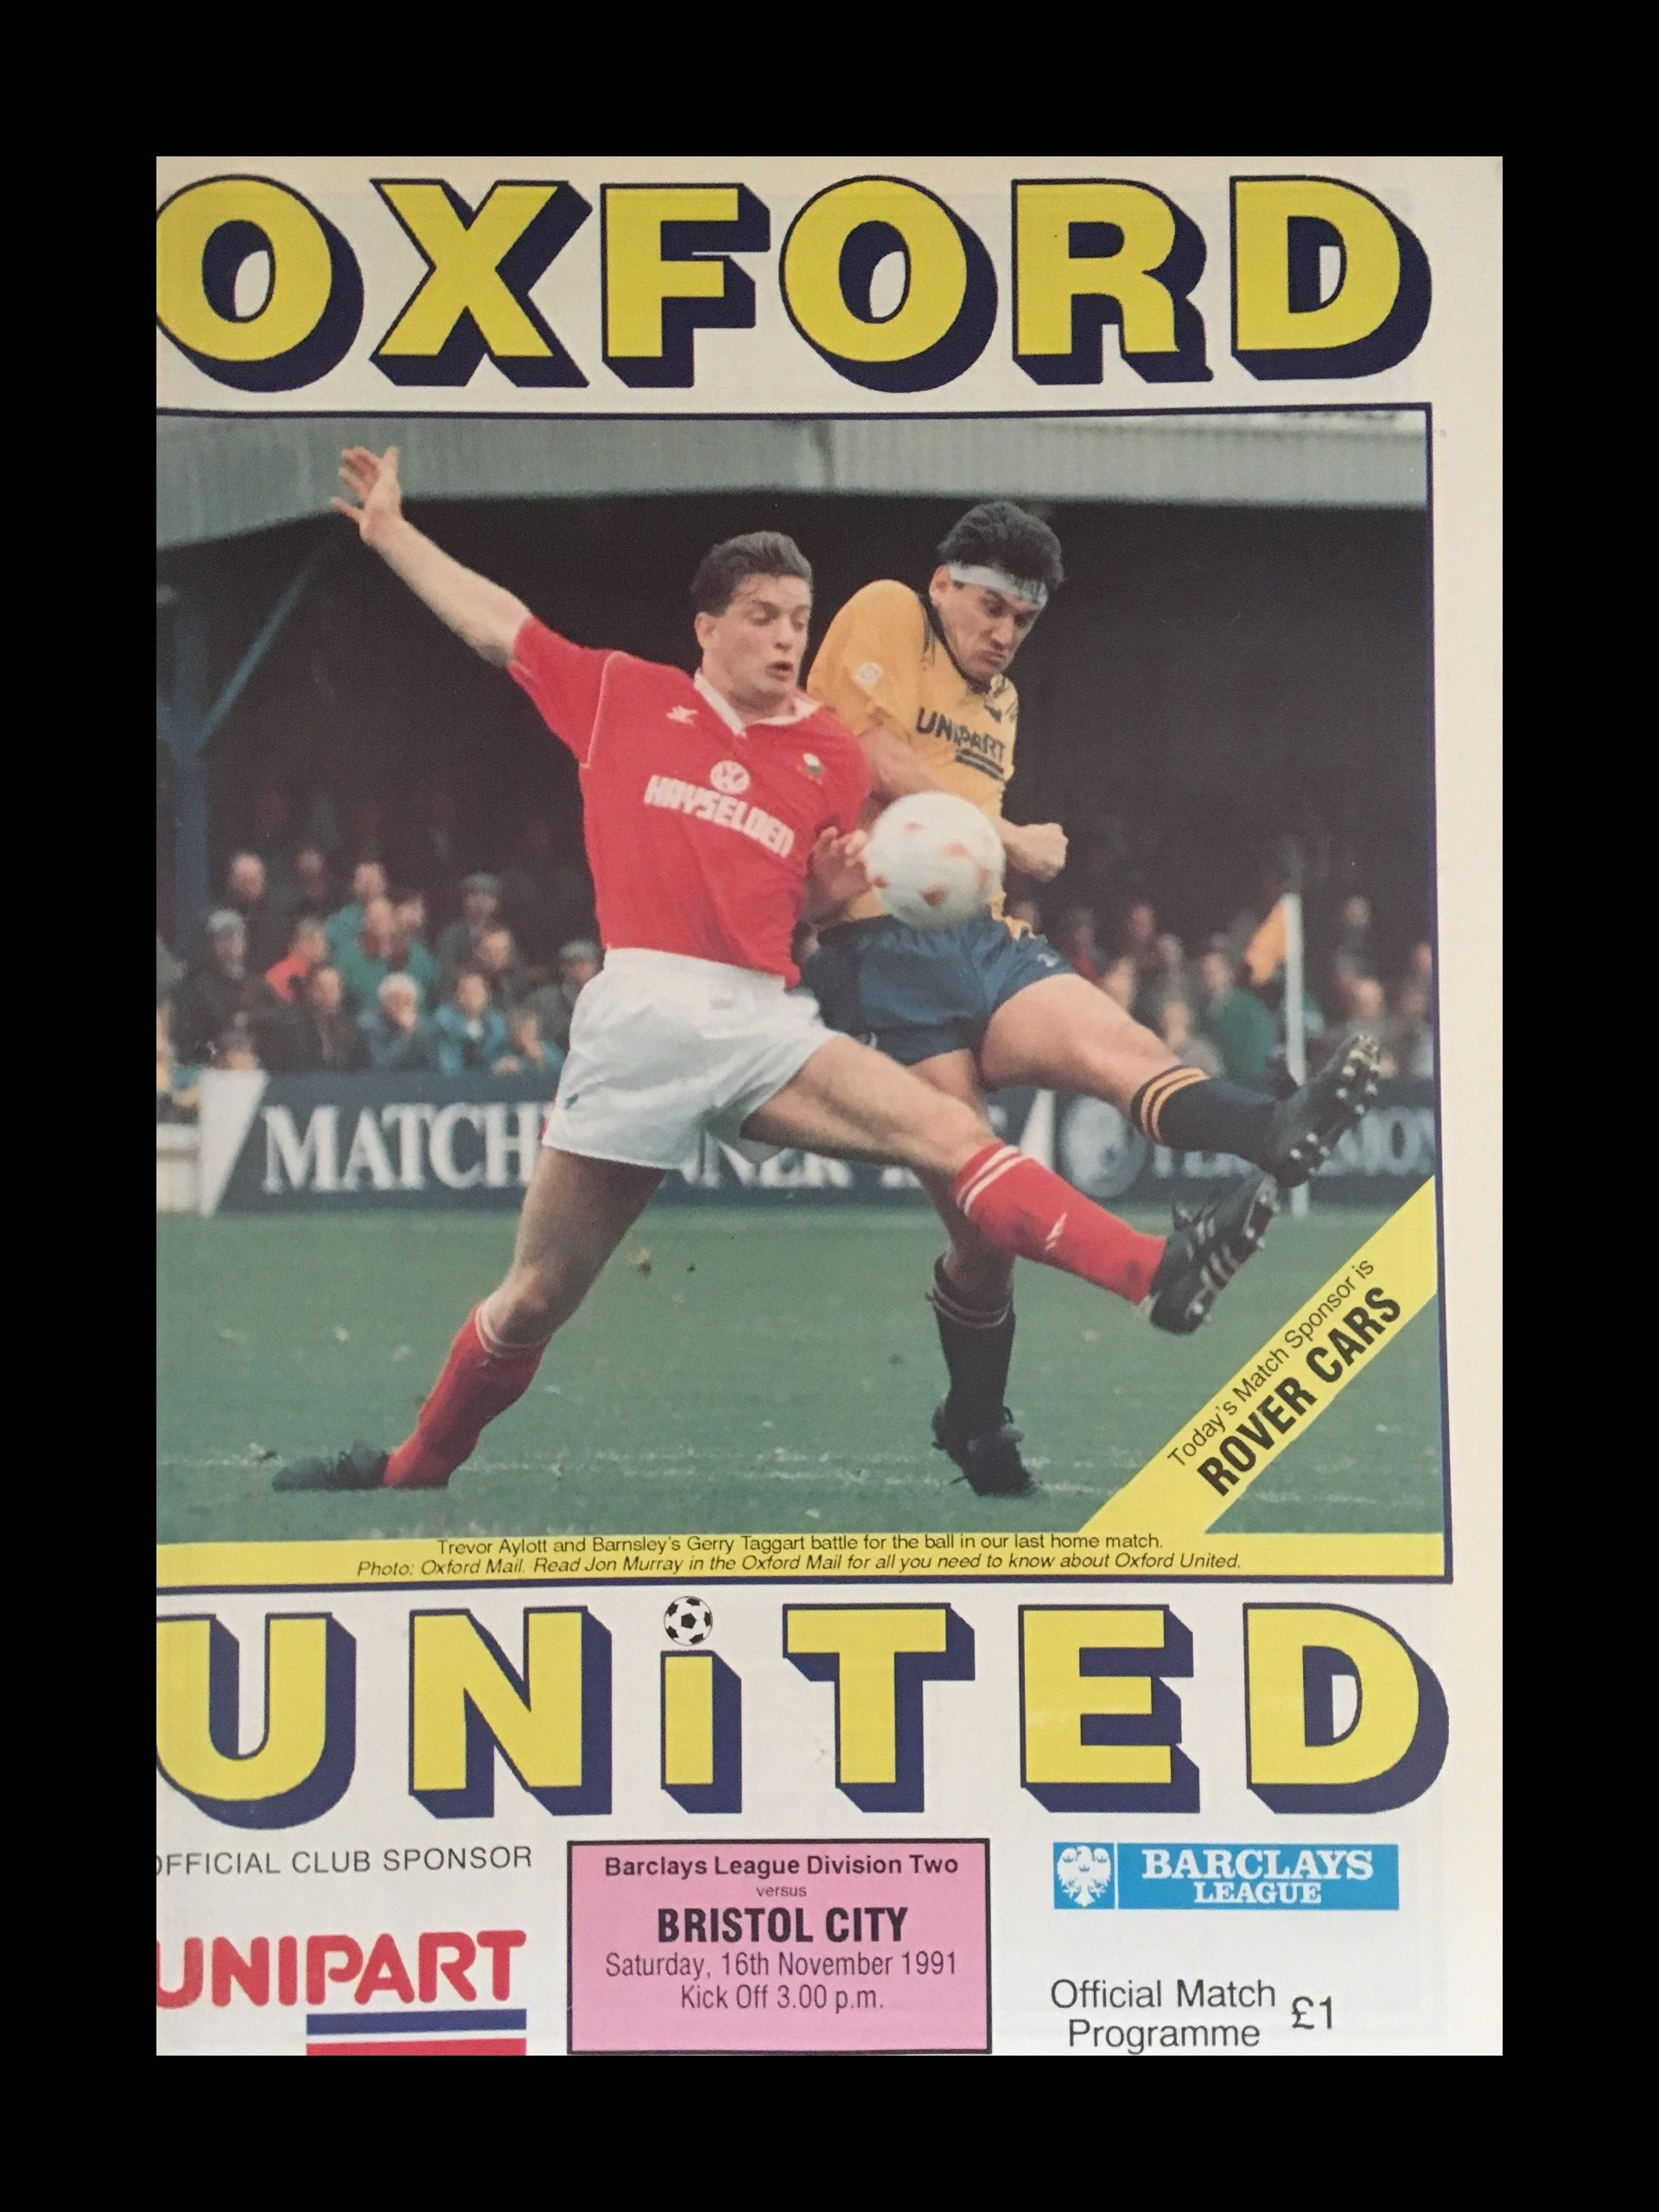 Oxford United v Bristol City 16-11-1991 Programme